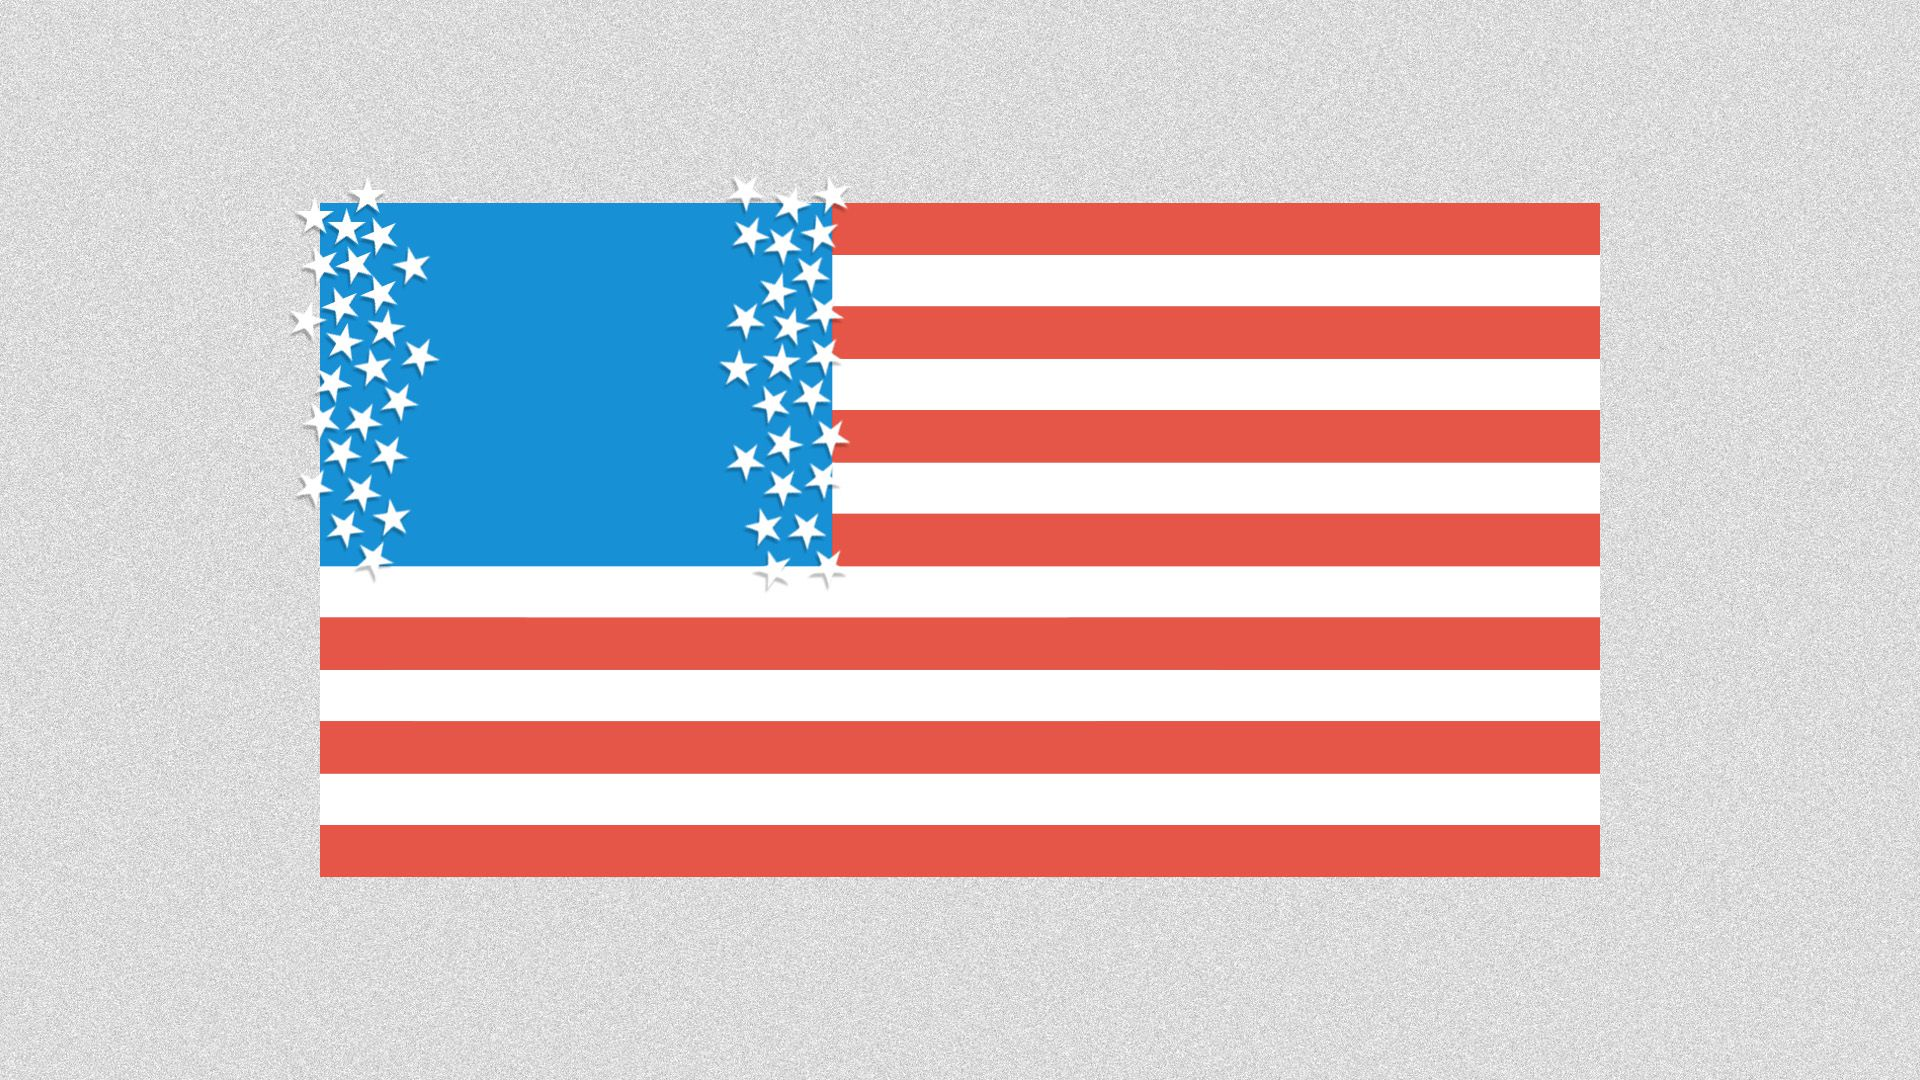 Illustration of American flag with parted stars